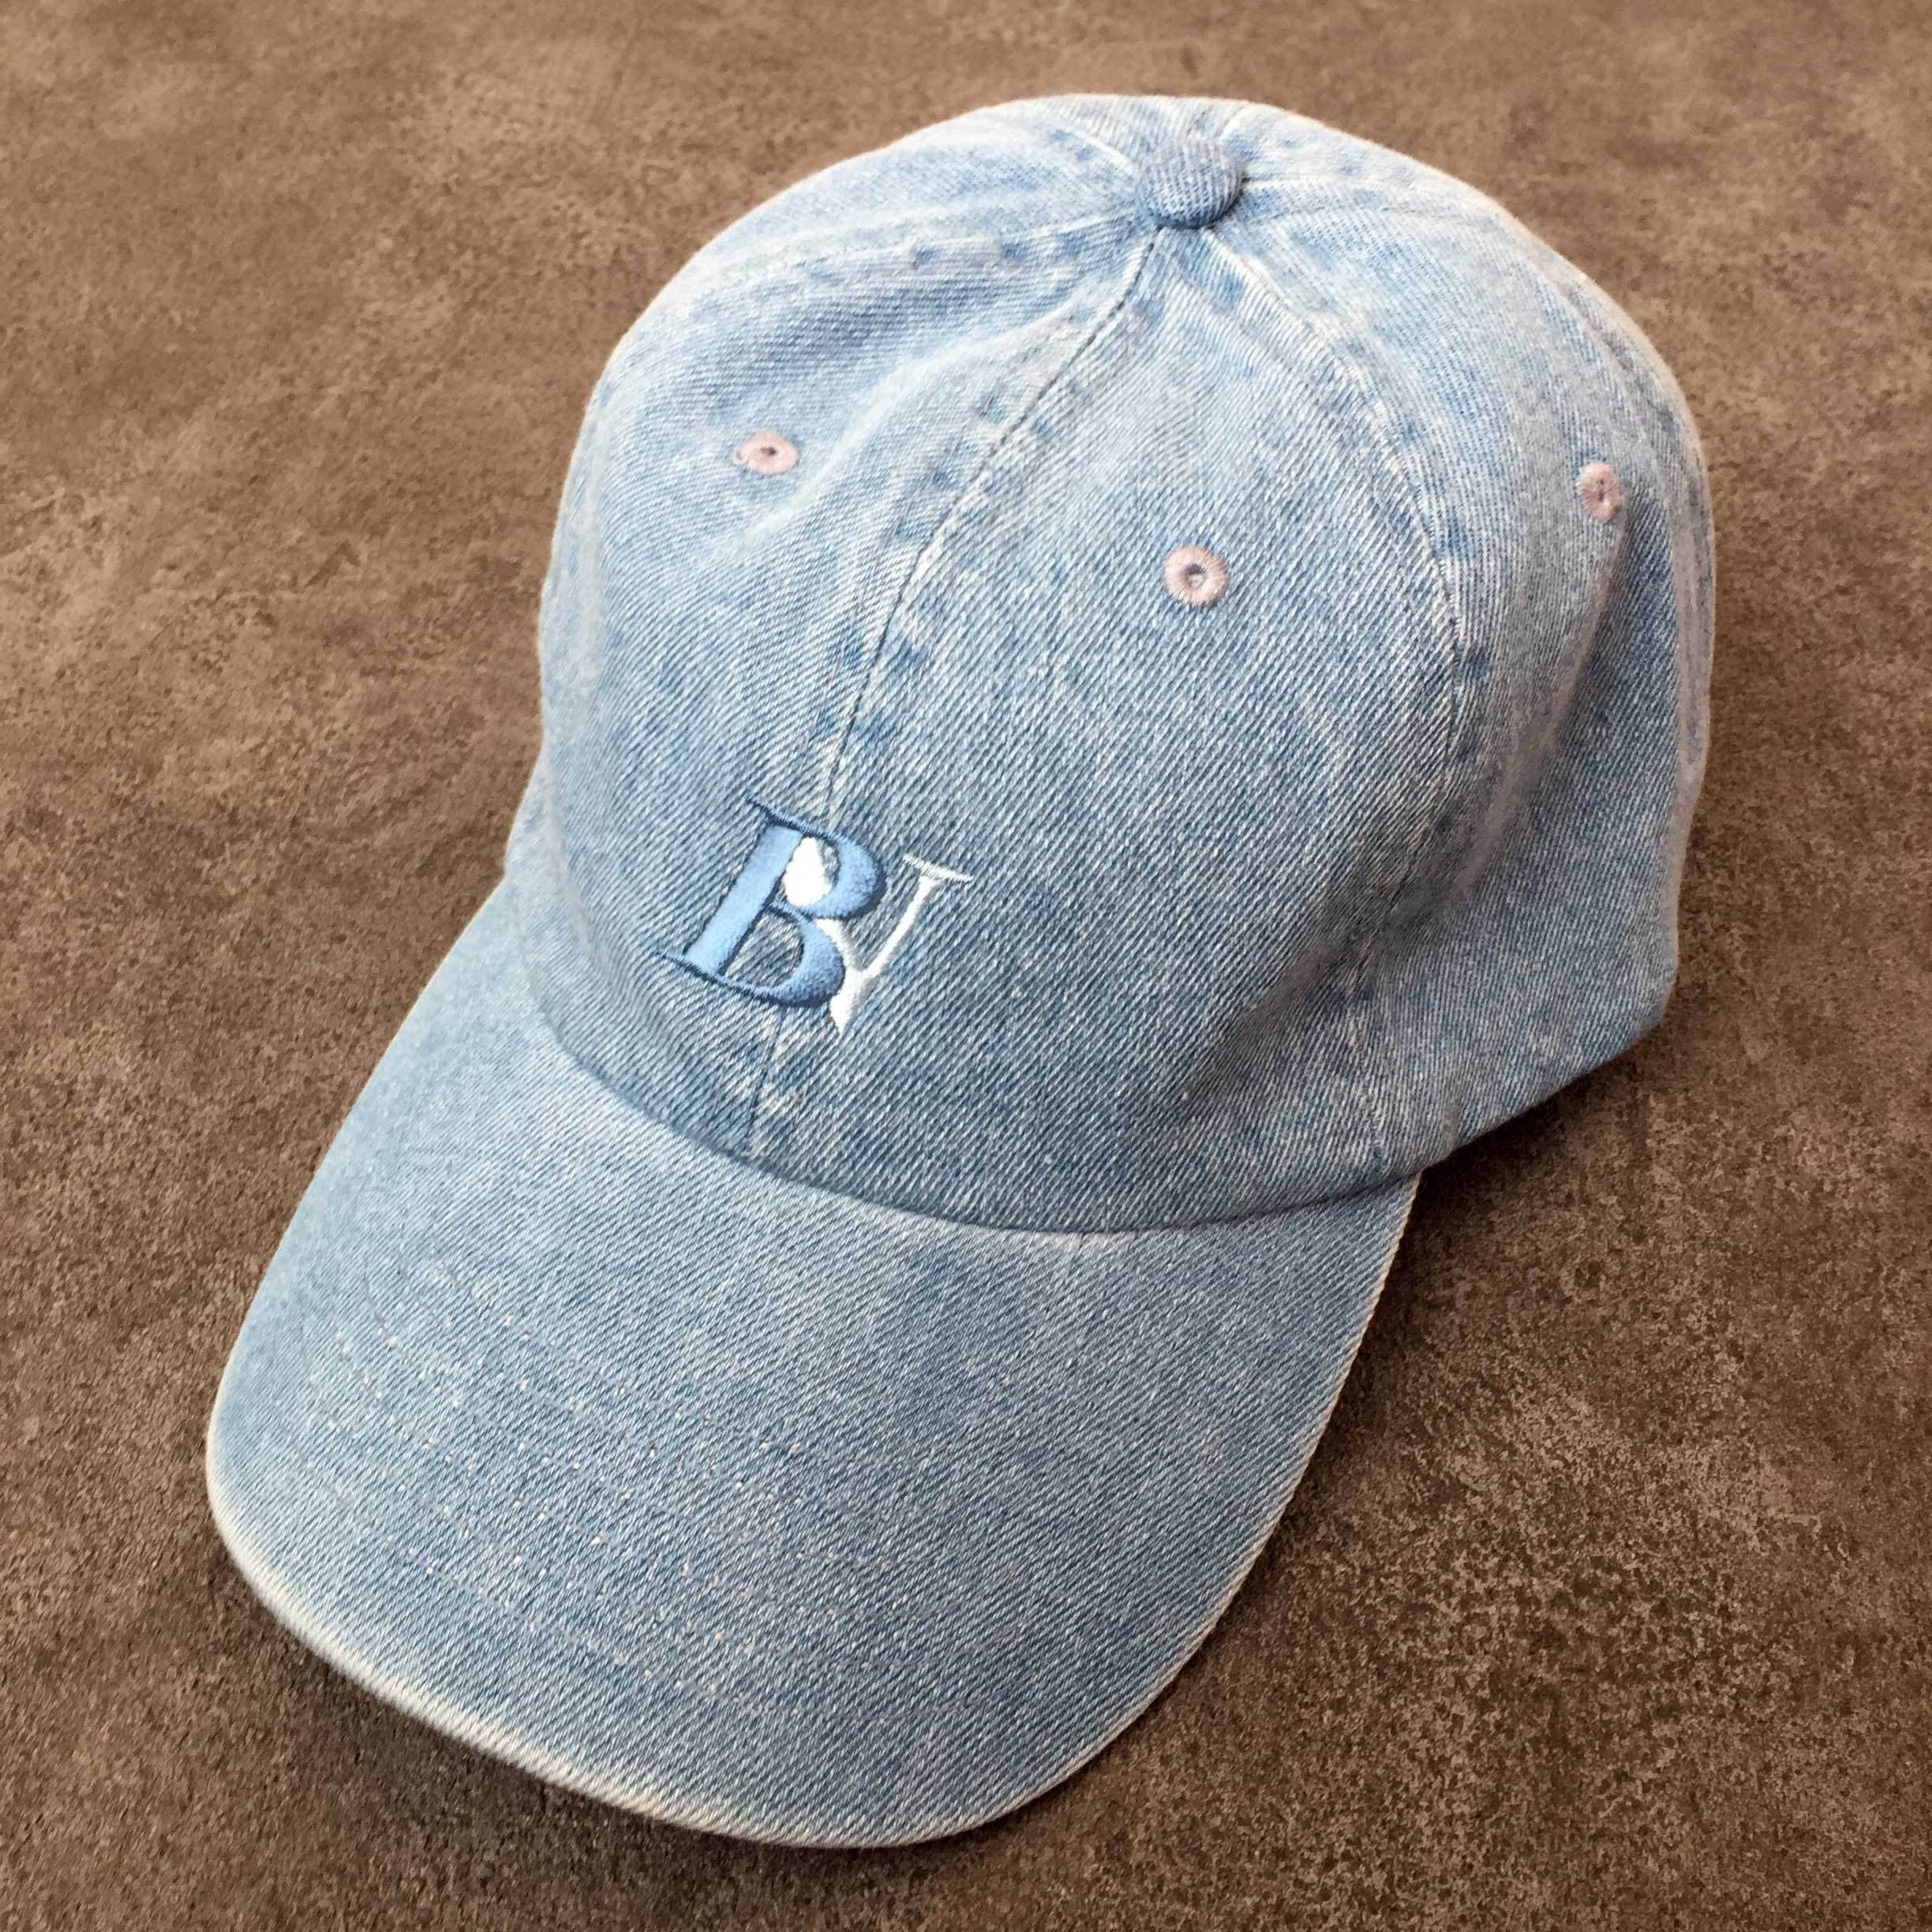 BV LOGO CAP (LIGHT BLUE DENIM)